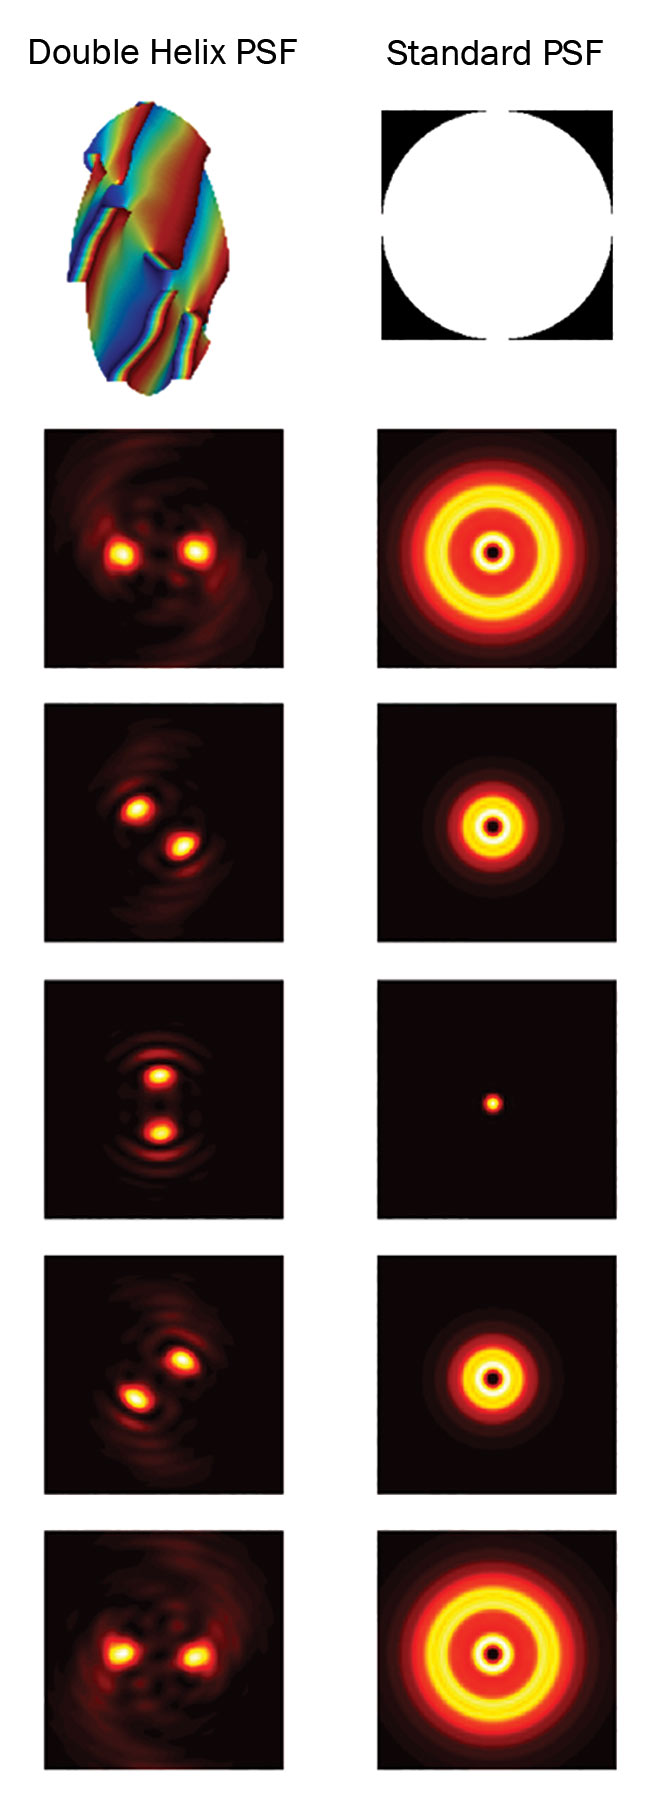 Figure 2. PSF of a standard optical system compared to the PSF of the double helix phase mask. Courtesy of Double Helix Optics.